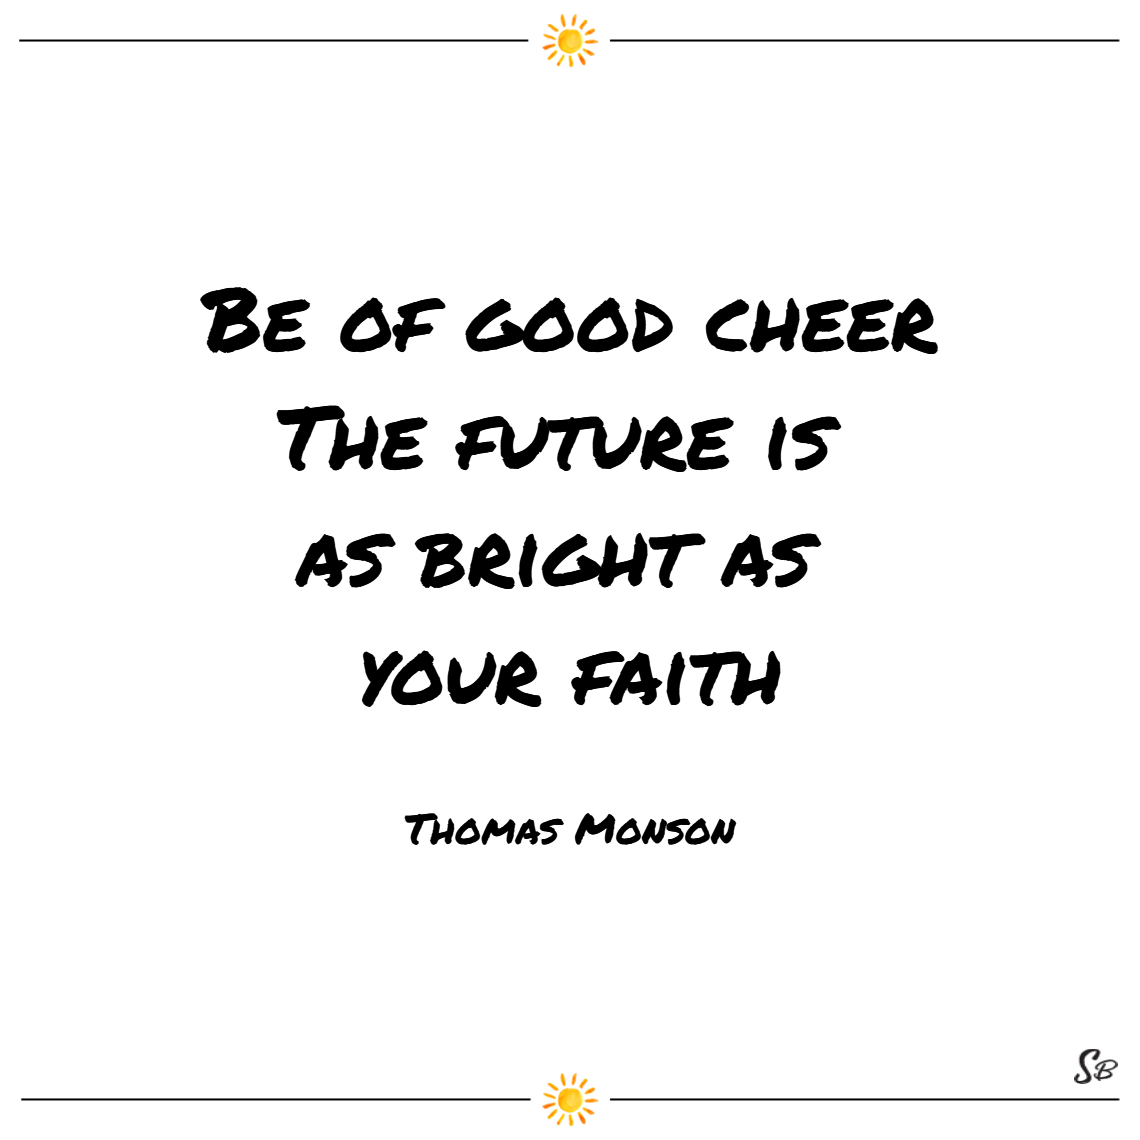 Be of good cheer. the future is as bright as your faith. – thomas monson